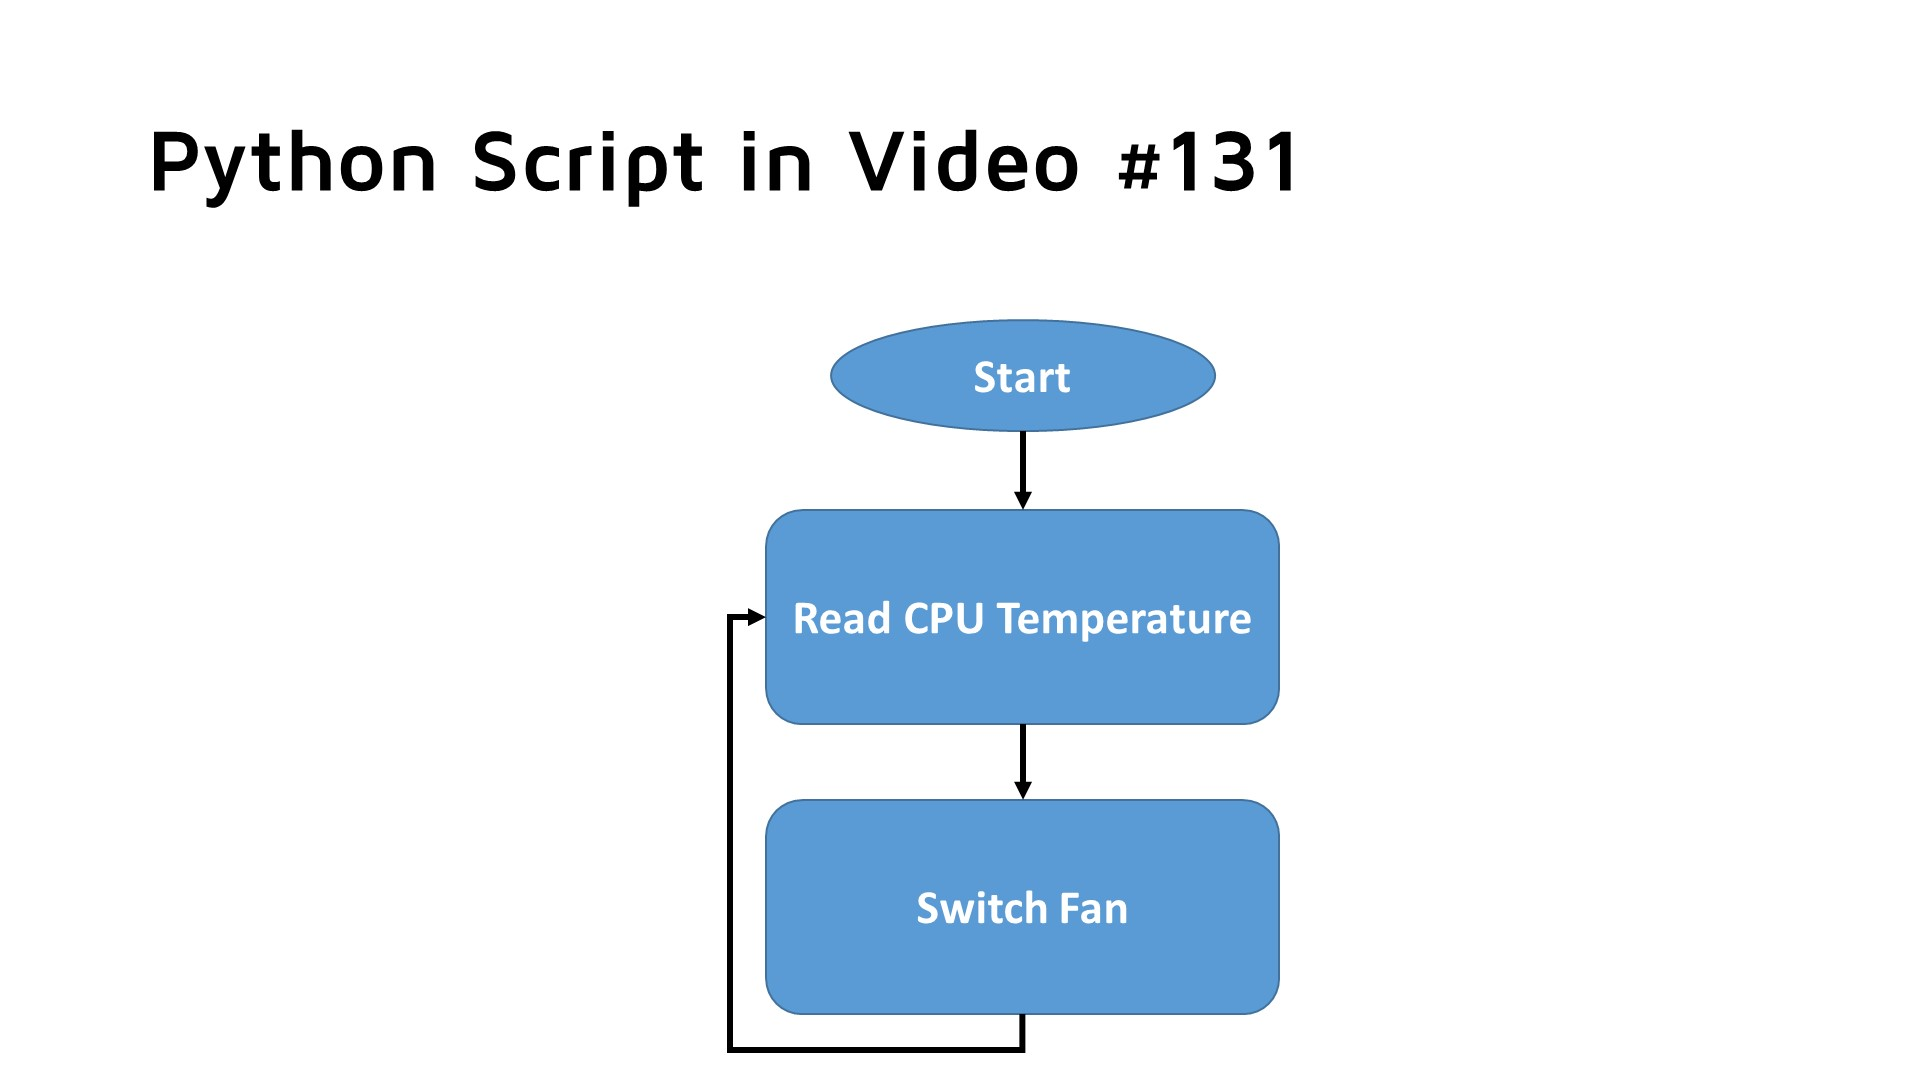 Variable Speed Cooling Fan For Raspberry Pi Using Pwm Video138 Wiringpi In Python The Script Has Two Tasks It To Be Started At Boot I Described How This Can Done A Earlier Blog And Video 131